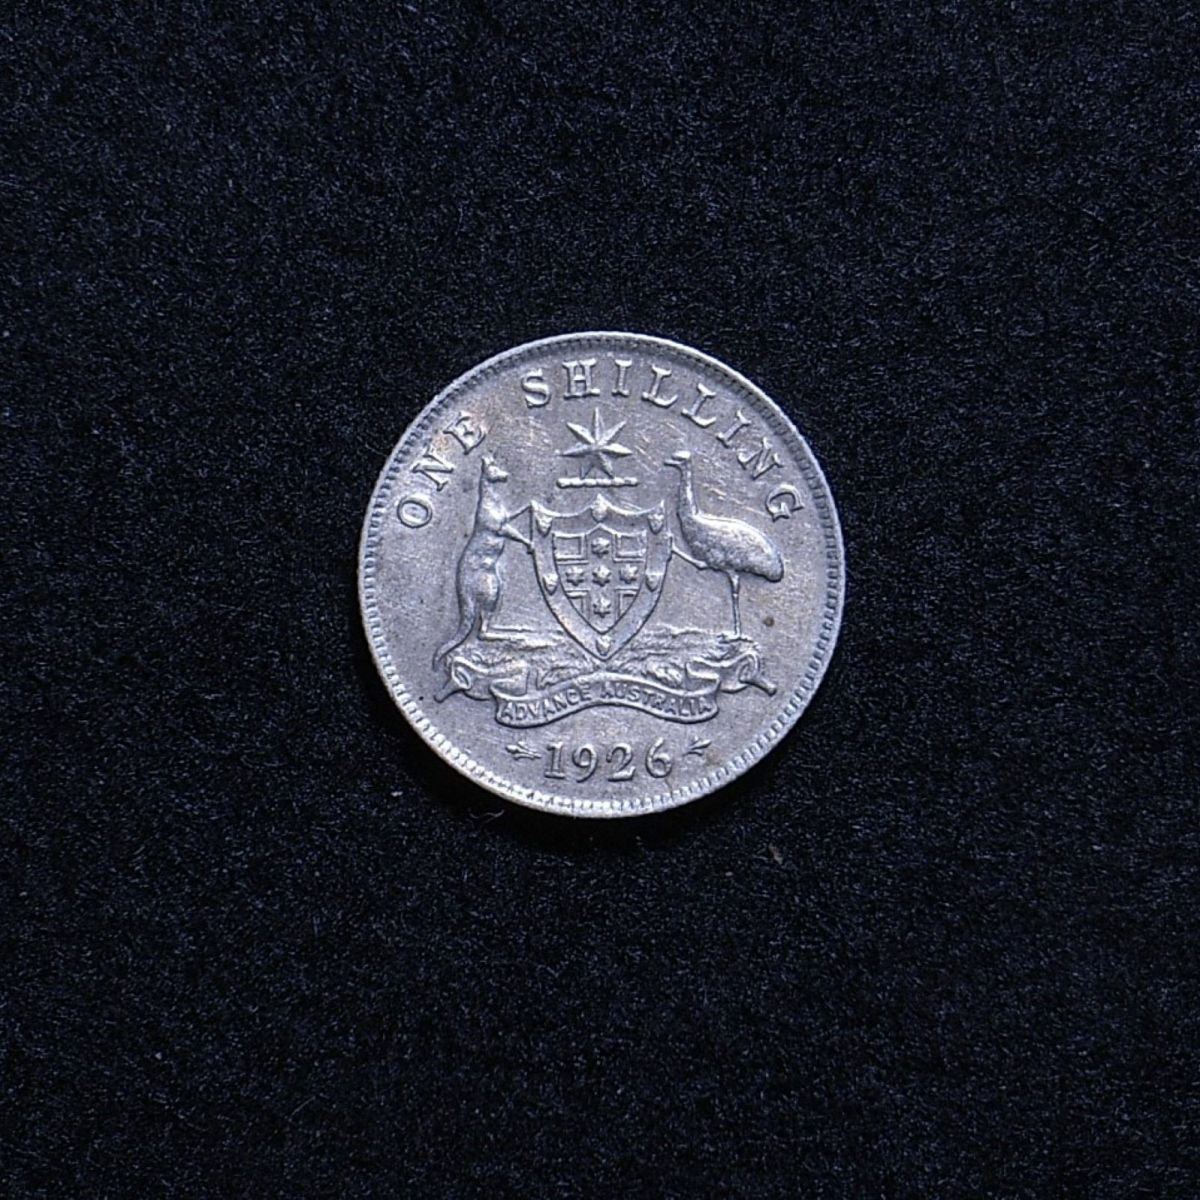 Aus Shilling 1926 reverse showing overall appearance